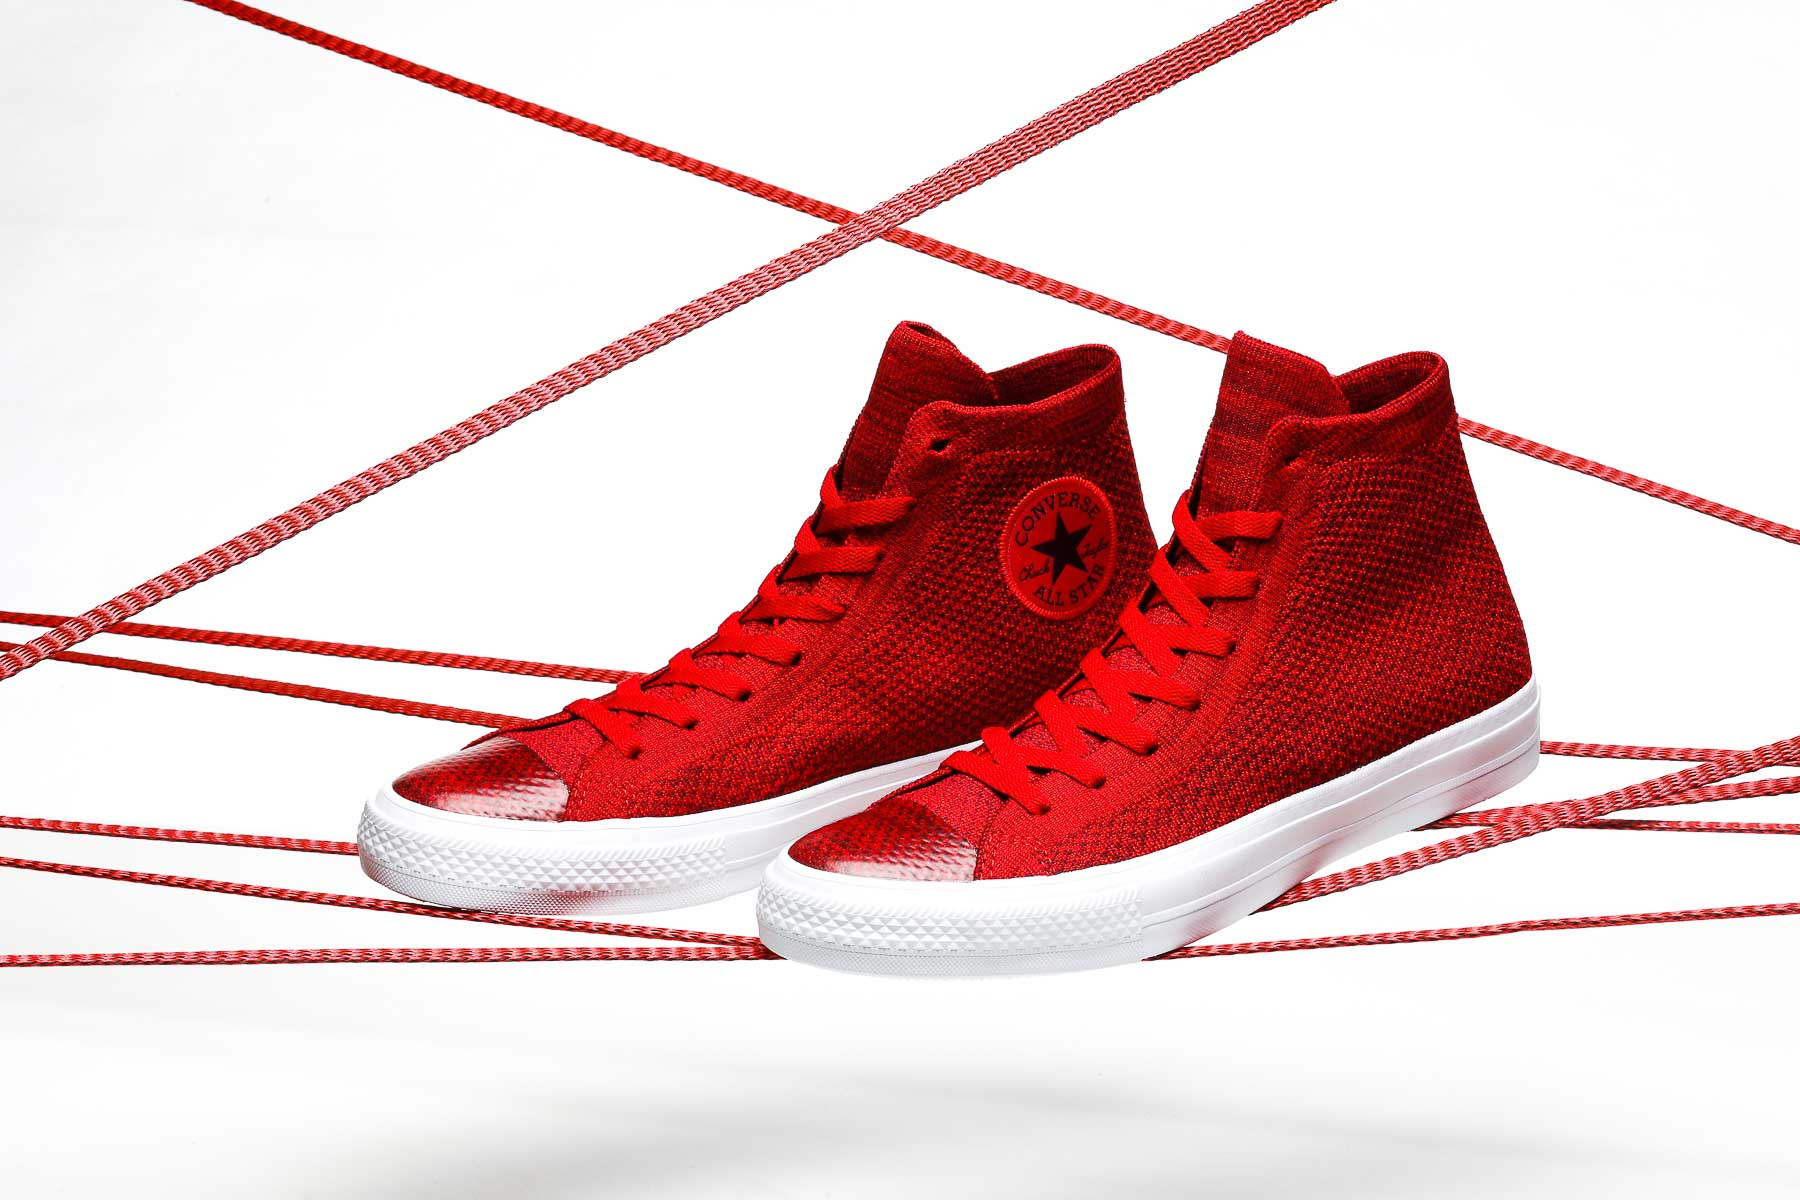 converse-chuck taylor all star x nike flyknit-2